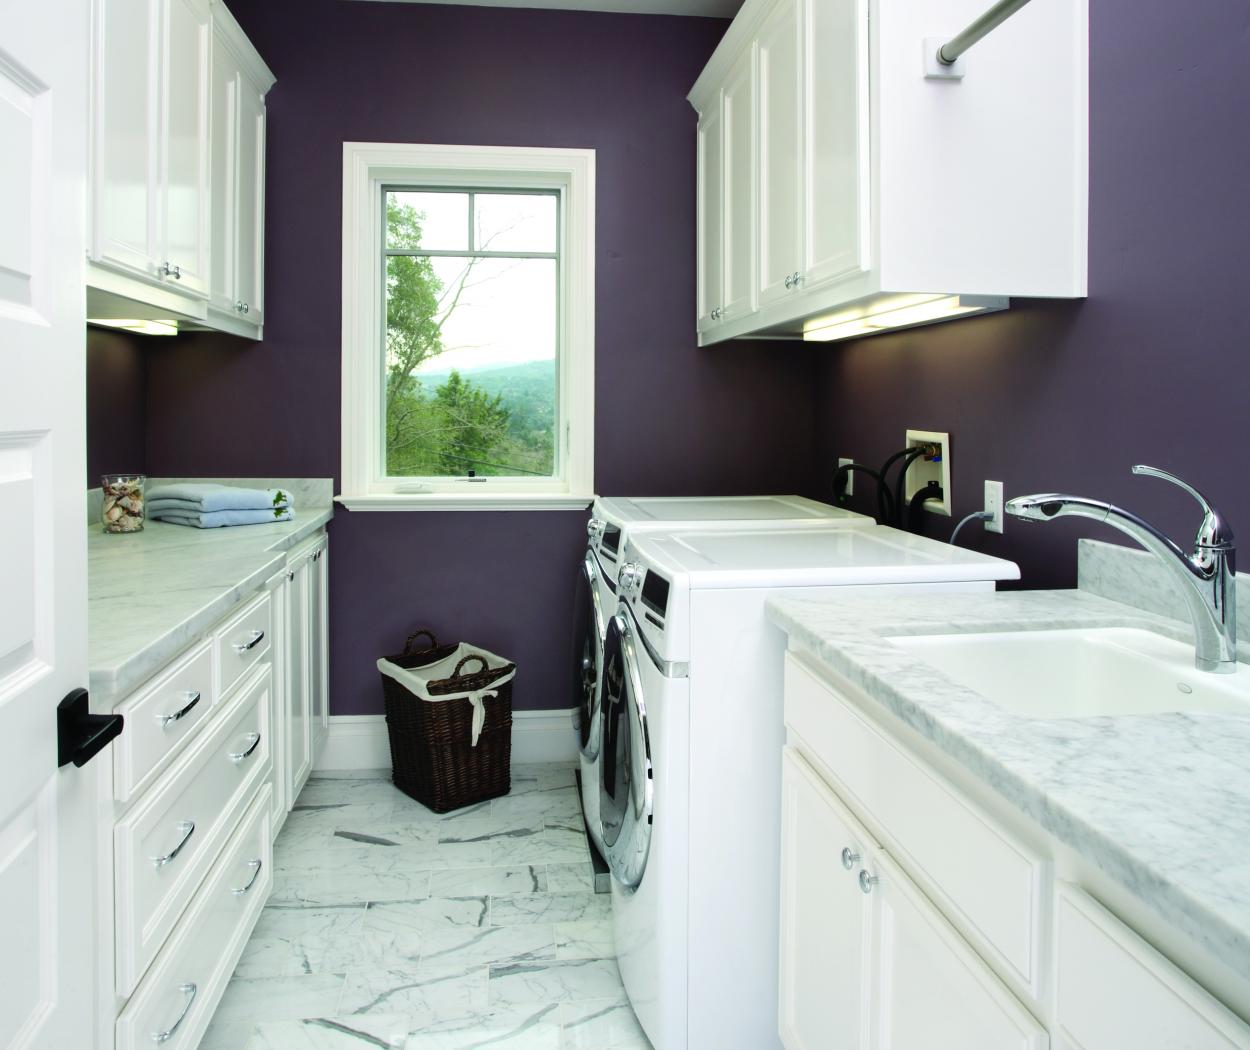 Transitional White Laundry Room with Beautiful Marble Counter Tops and Whirlpool Washer - Dryer